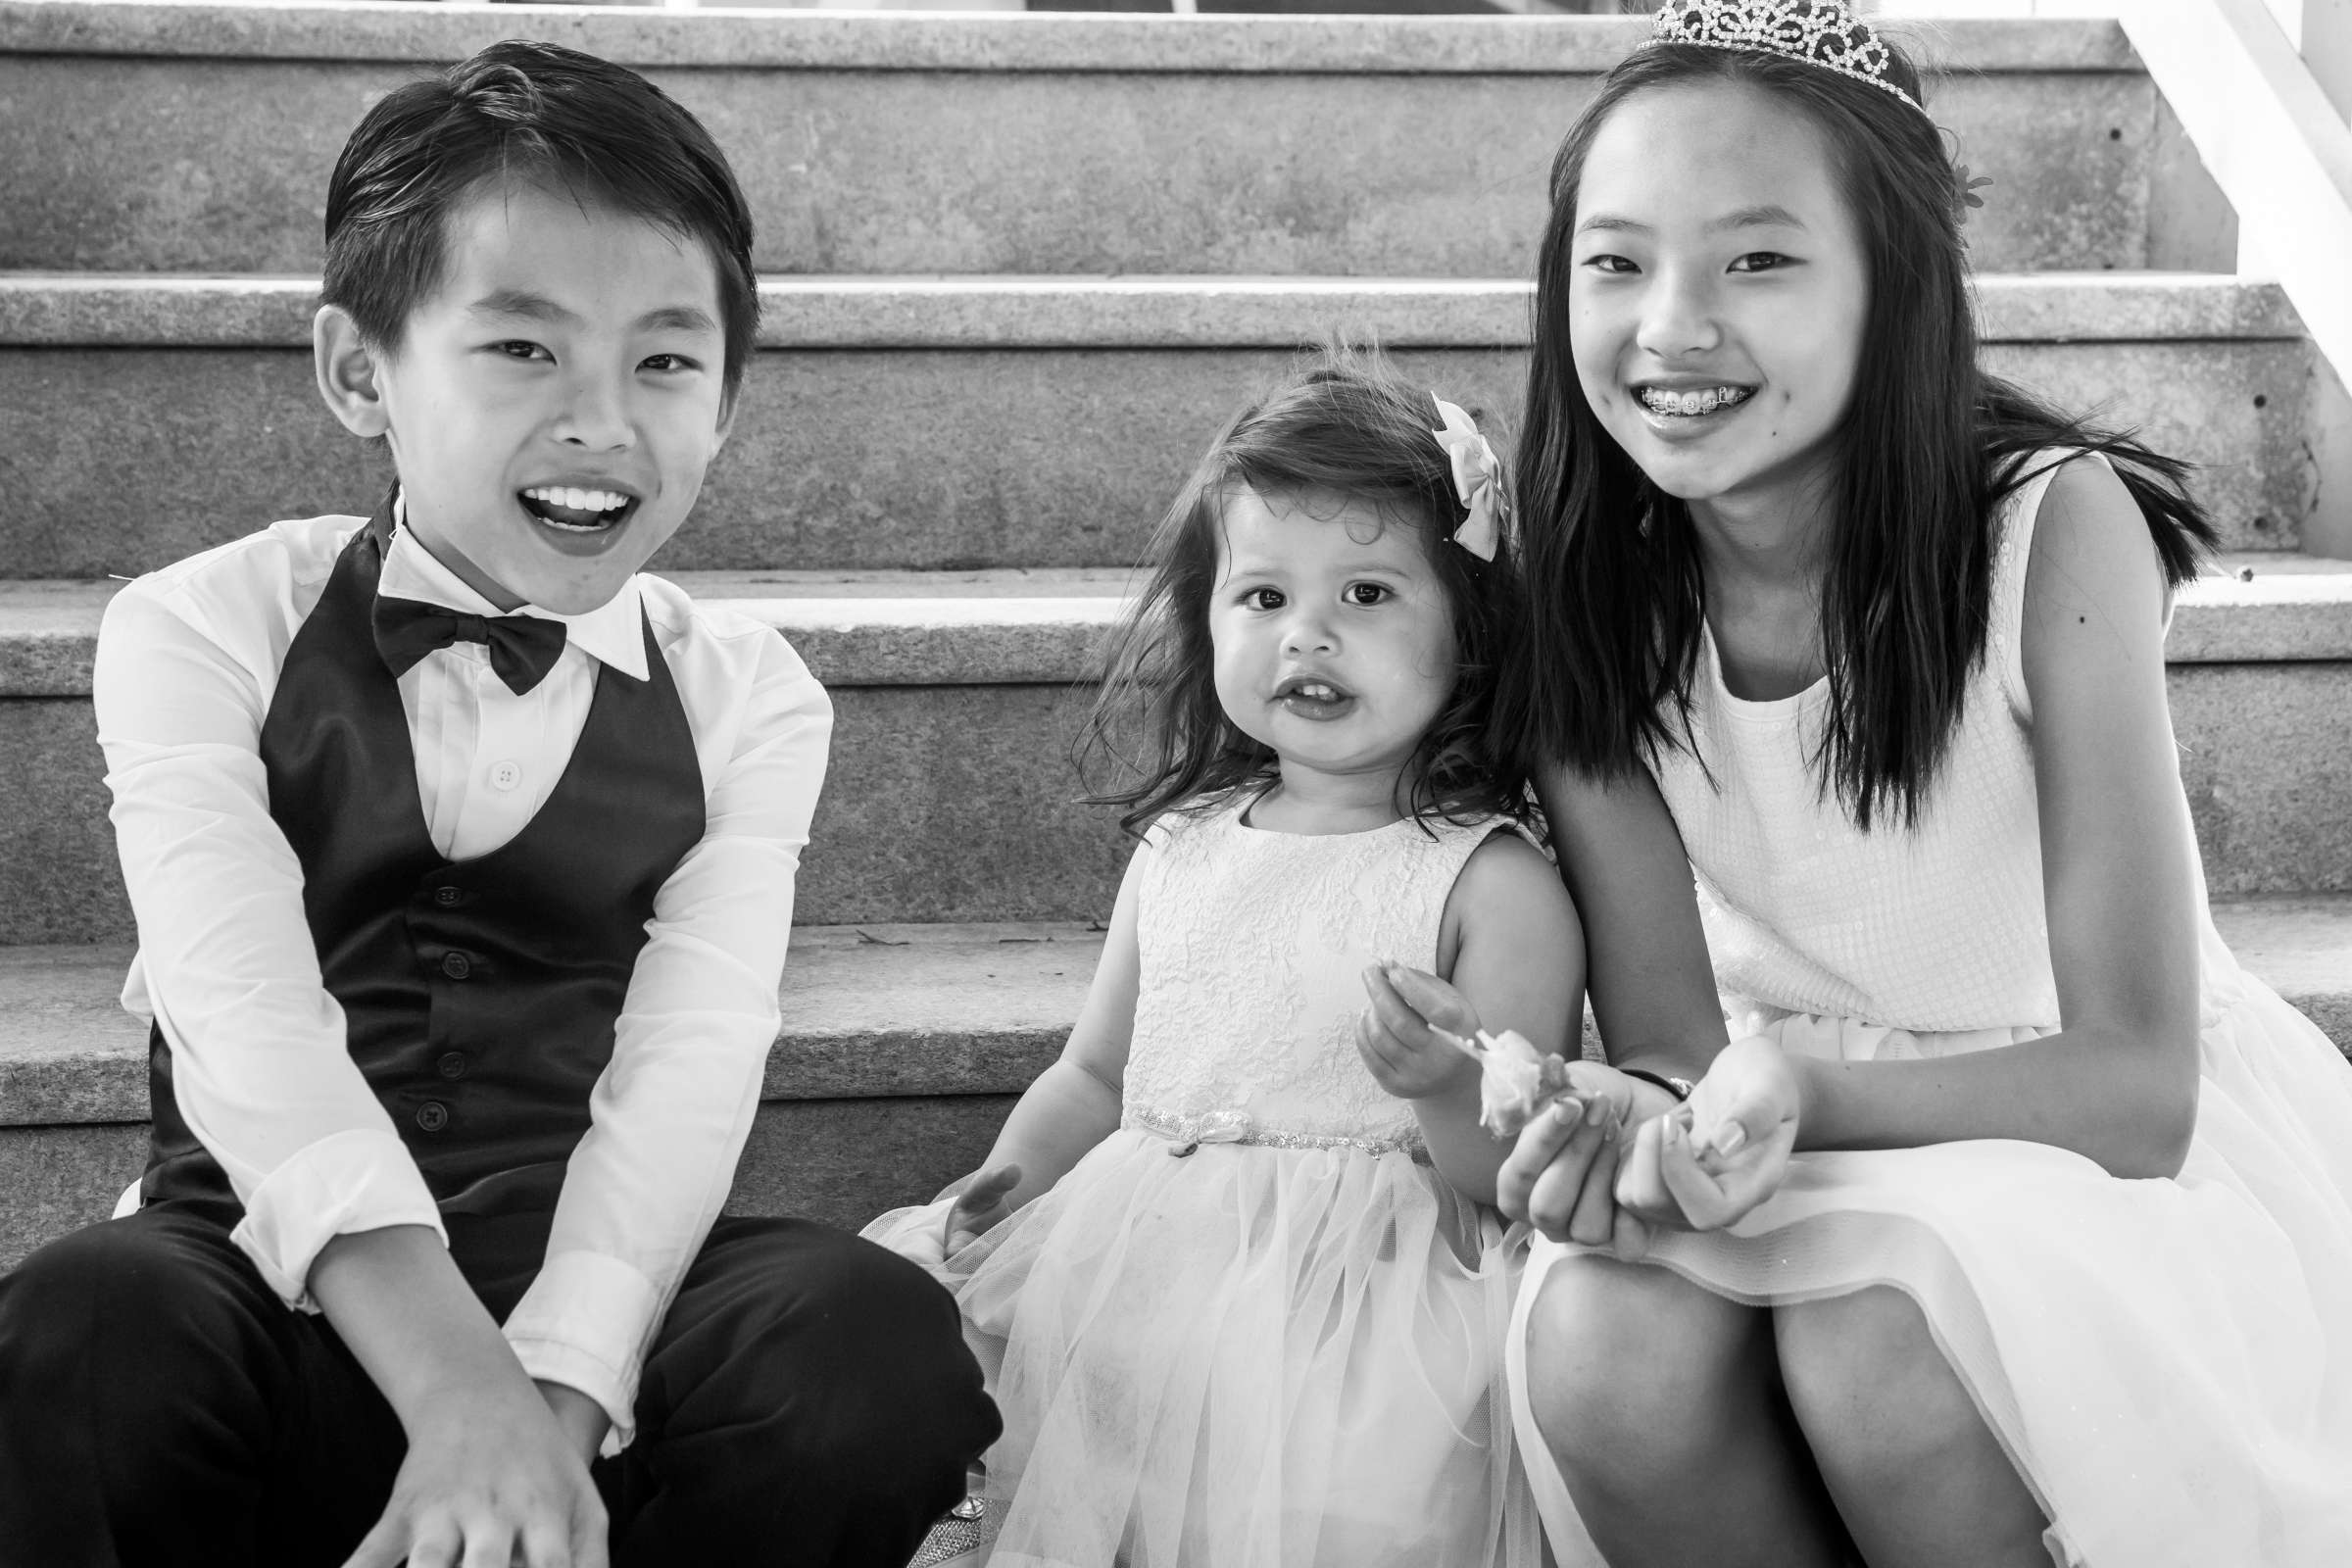 Martin Johnson House Wedding coordinated by Breezy Day Weddings, Cindy and Vinh Wedding Photo #415990 by True Photography